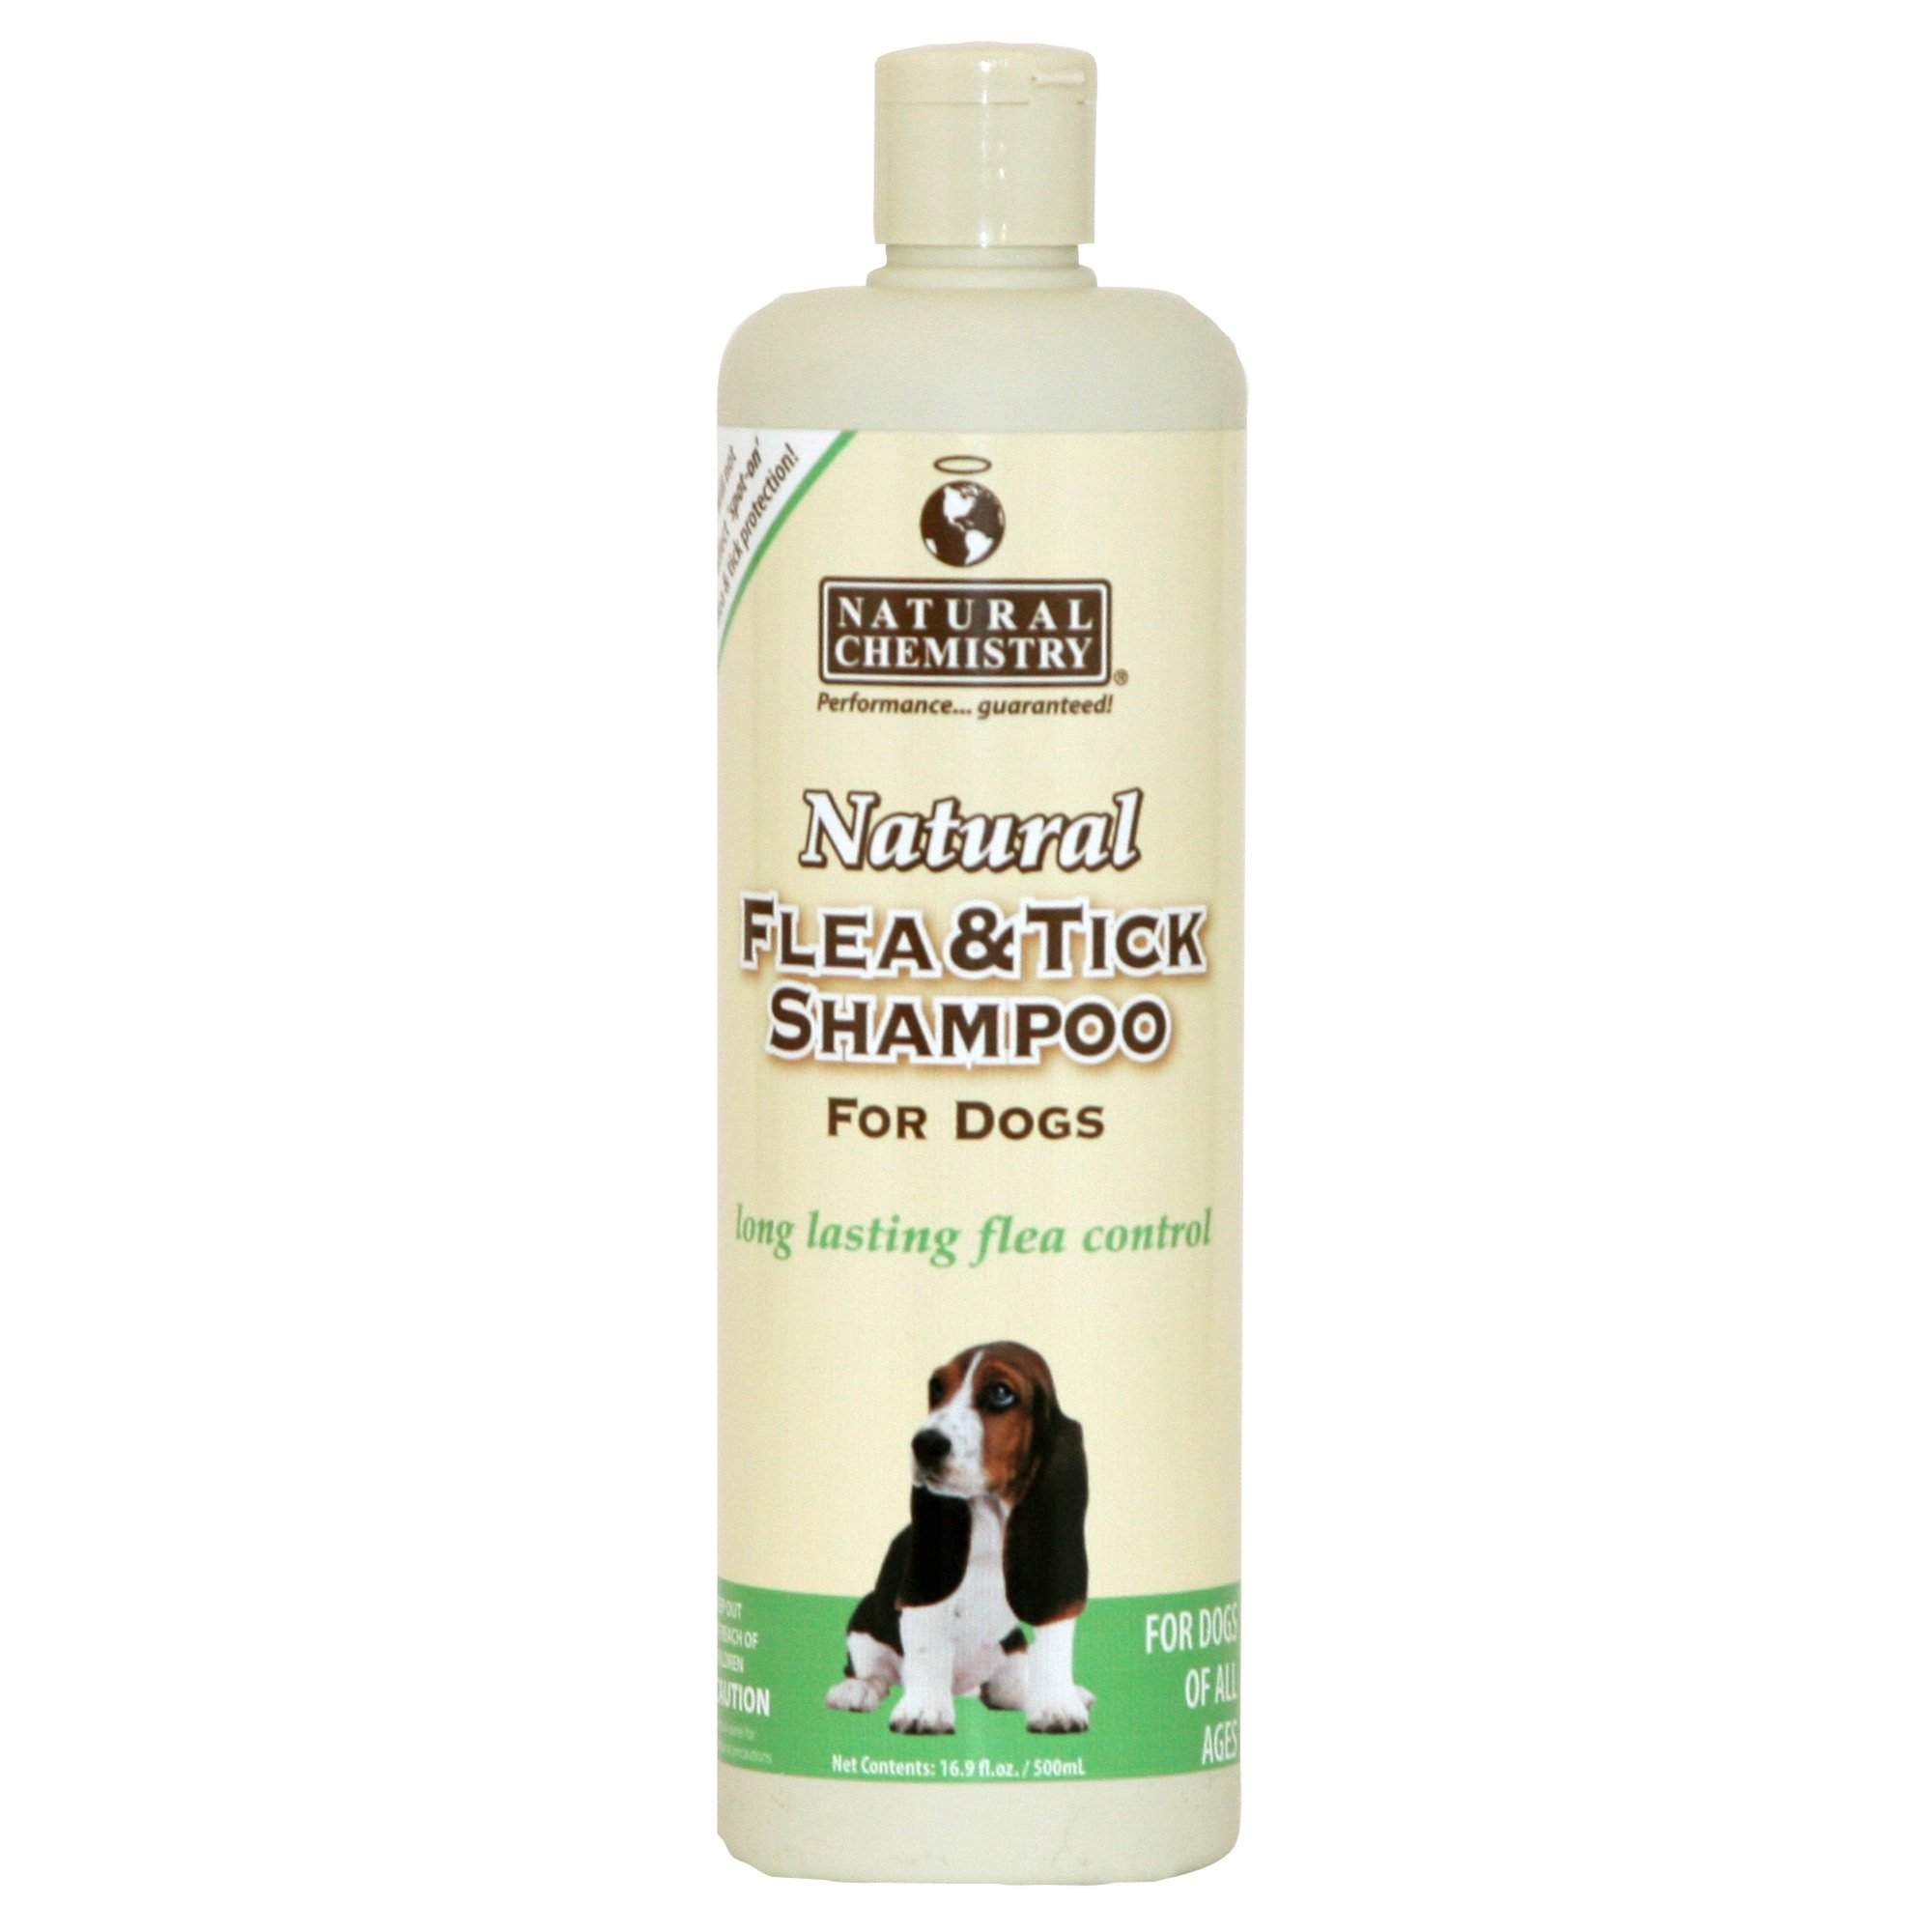 Image of Natural Chemistry Flea & Tick Dog Shampoo, 16.9 fl. Oz., 16.9 FZ